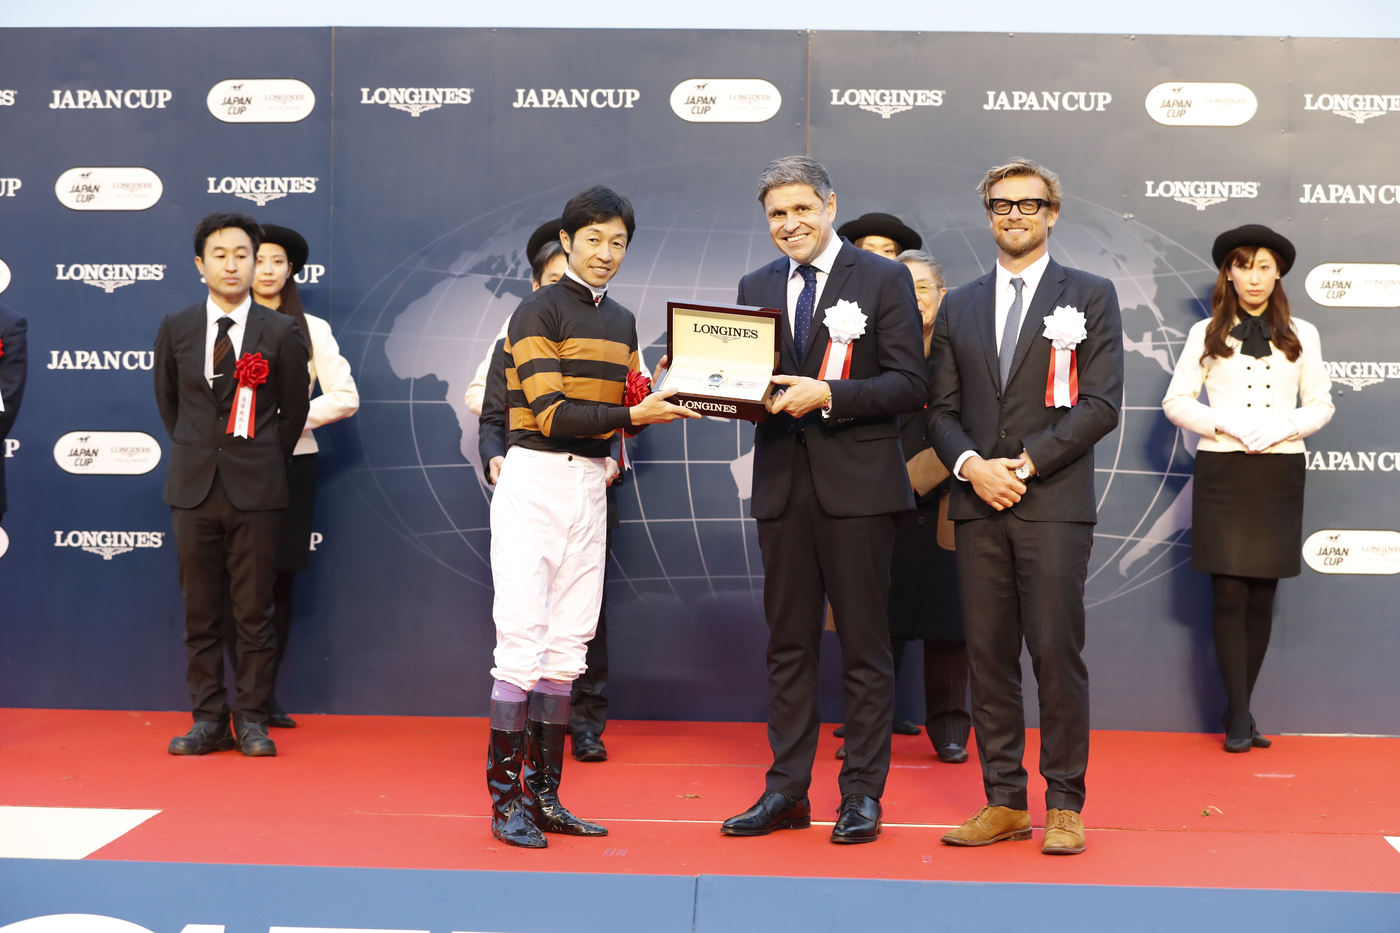 Longines Flat Racing Event: Kitasan Black and Yutaka Take caught the spotlight at 2016 Japan Cup in association with Longines  2